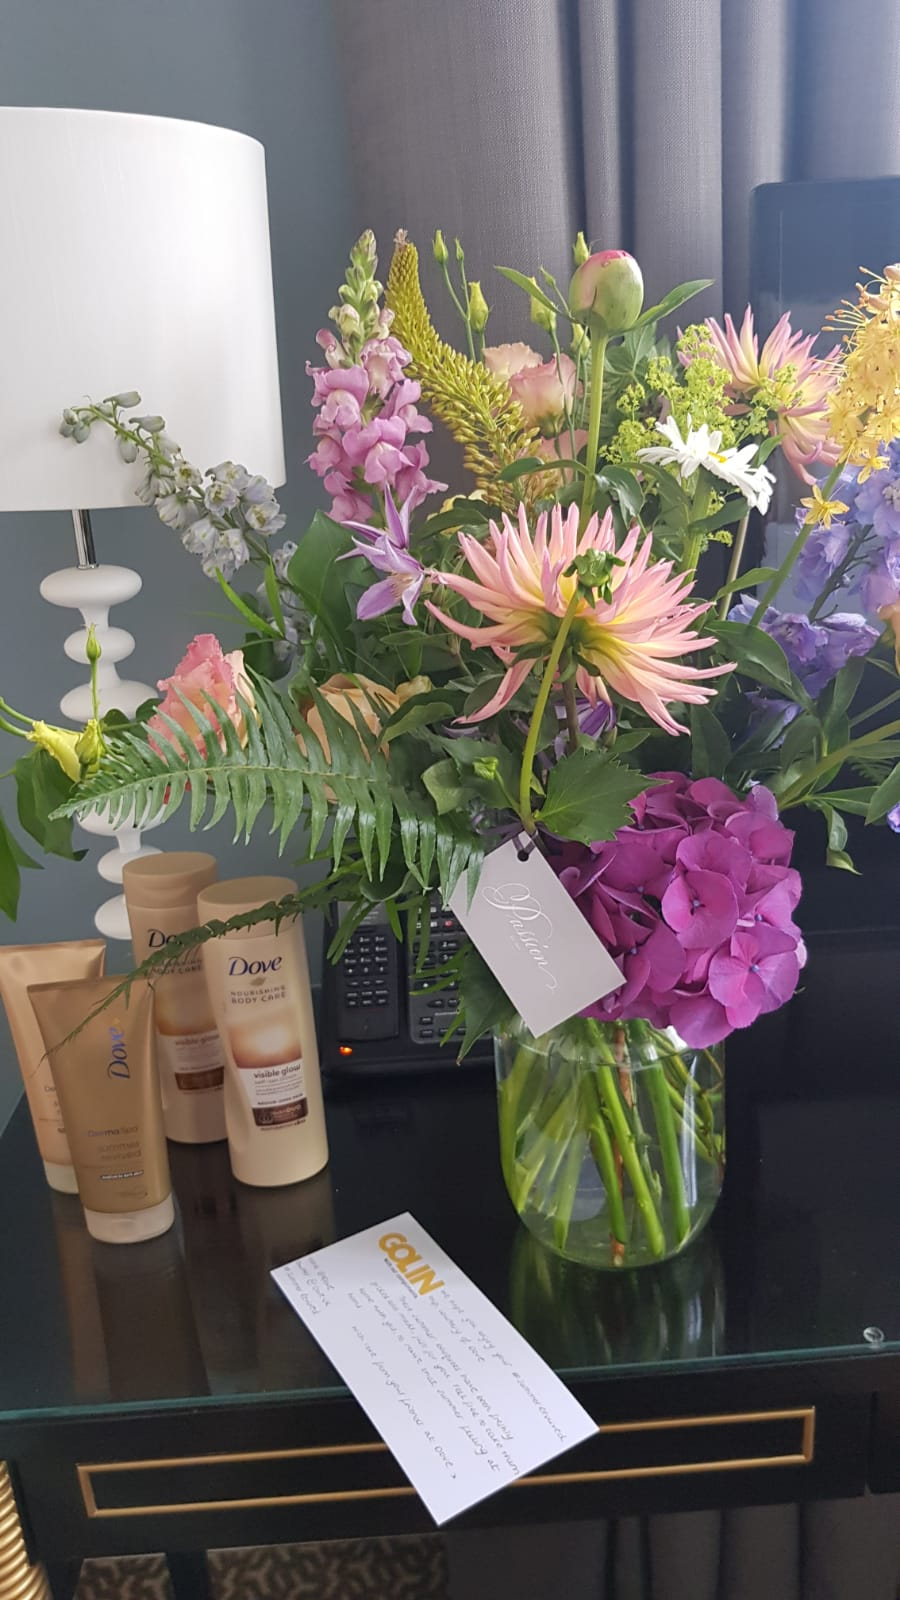 Dove's gradual tanning products and beautiful flowers left in hotel room at Dove bloggers spa retreat